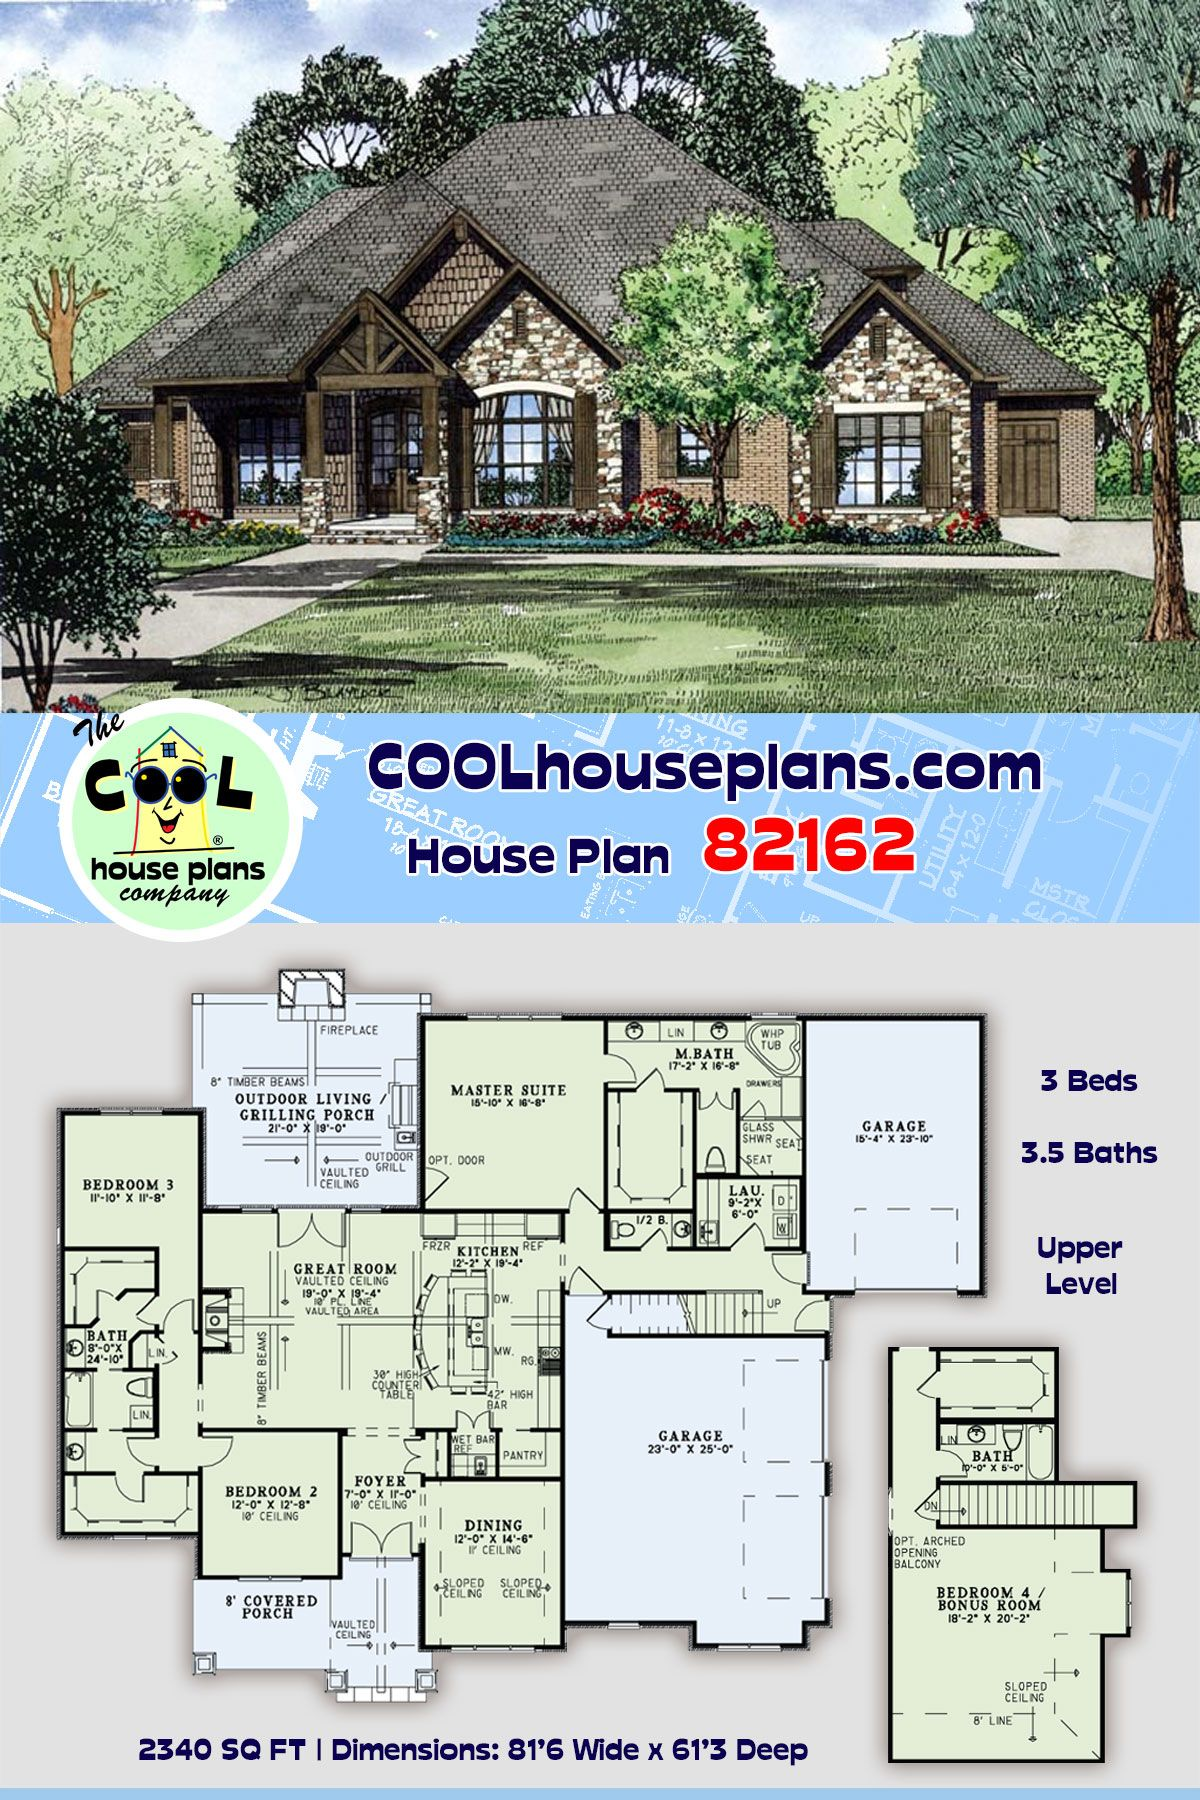 European Style House Plan 82162 With 3 Bed 4 Bath 3 Car Garage In 2020 Craftsman Style House Plans Best House Plans European House